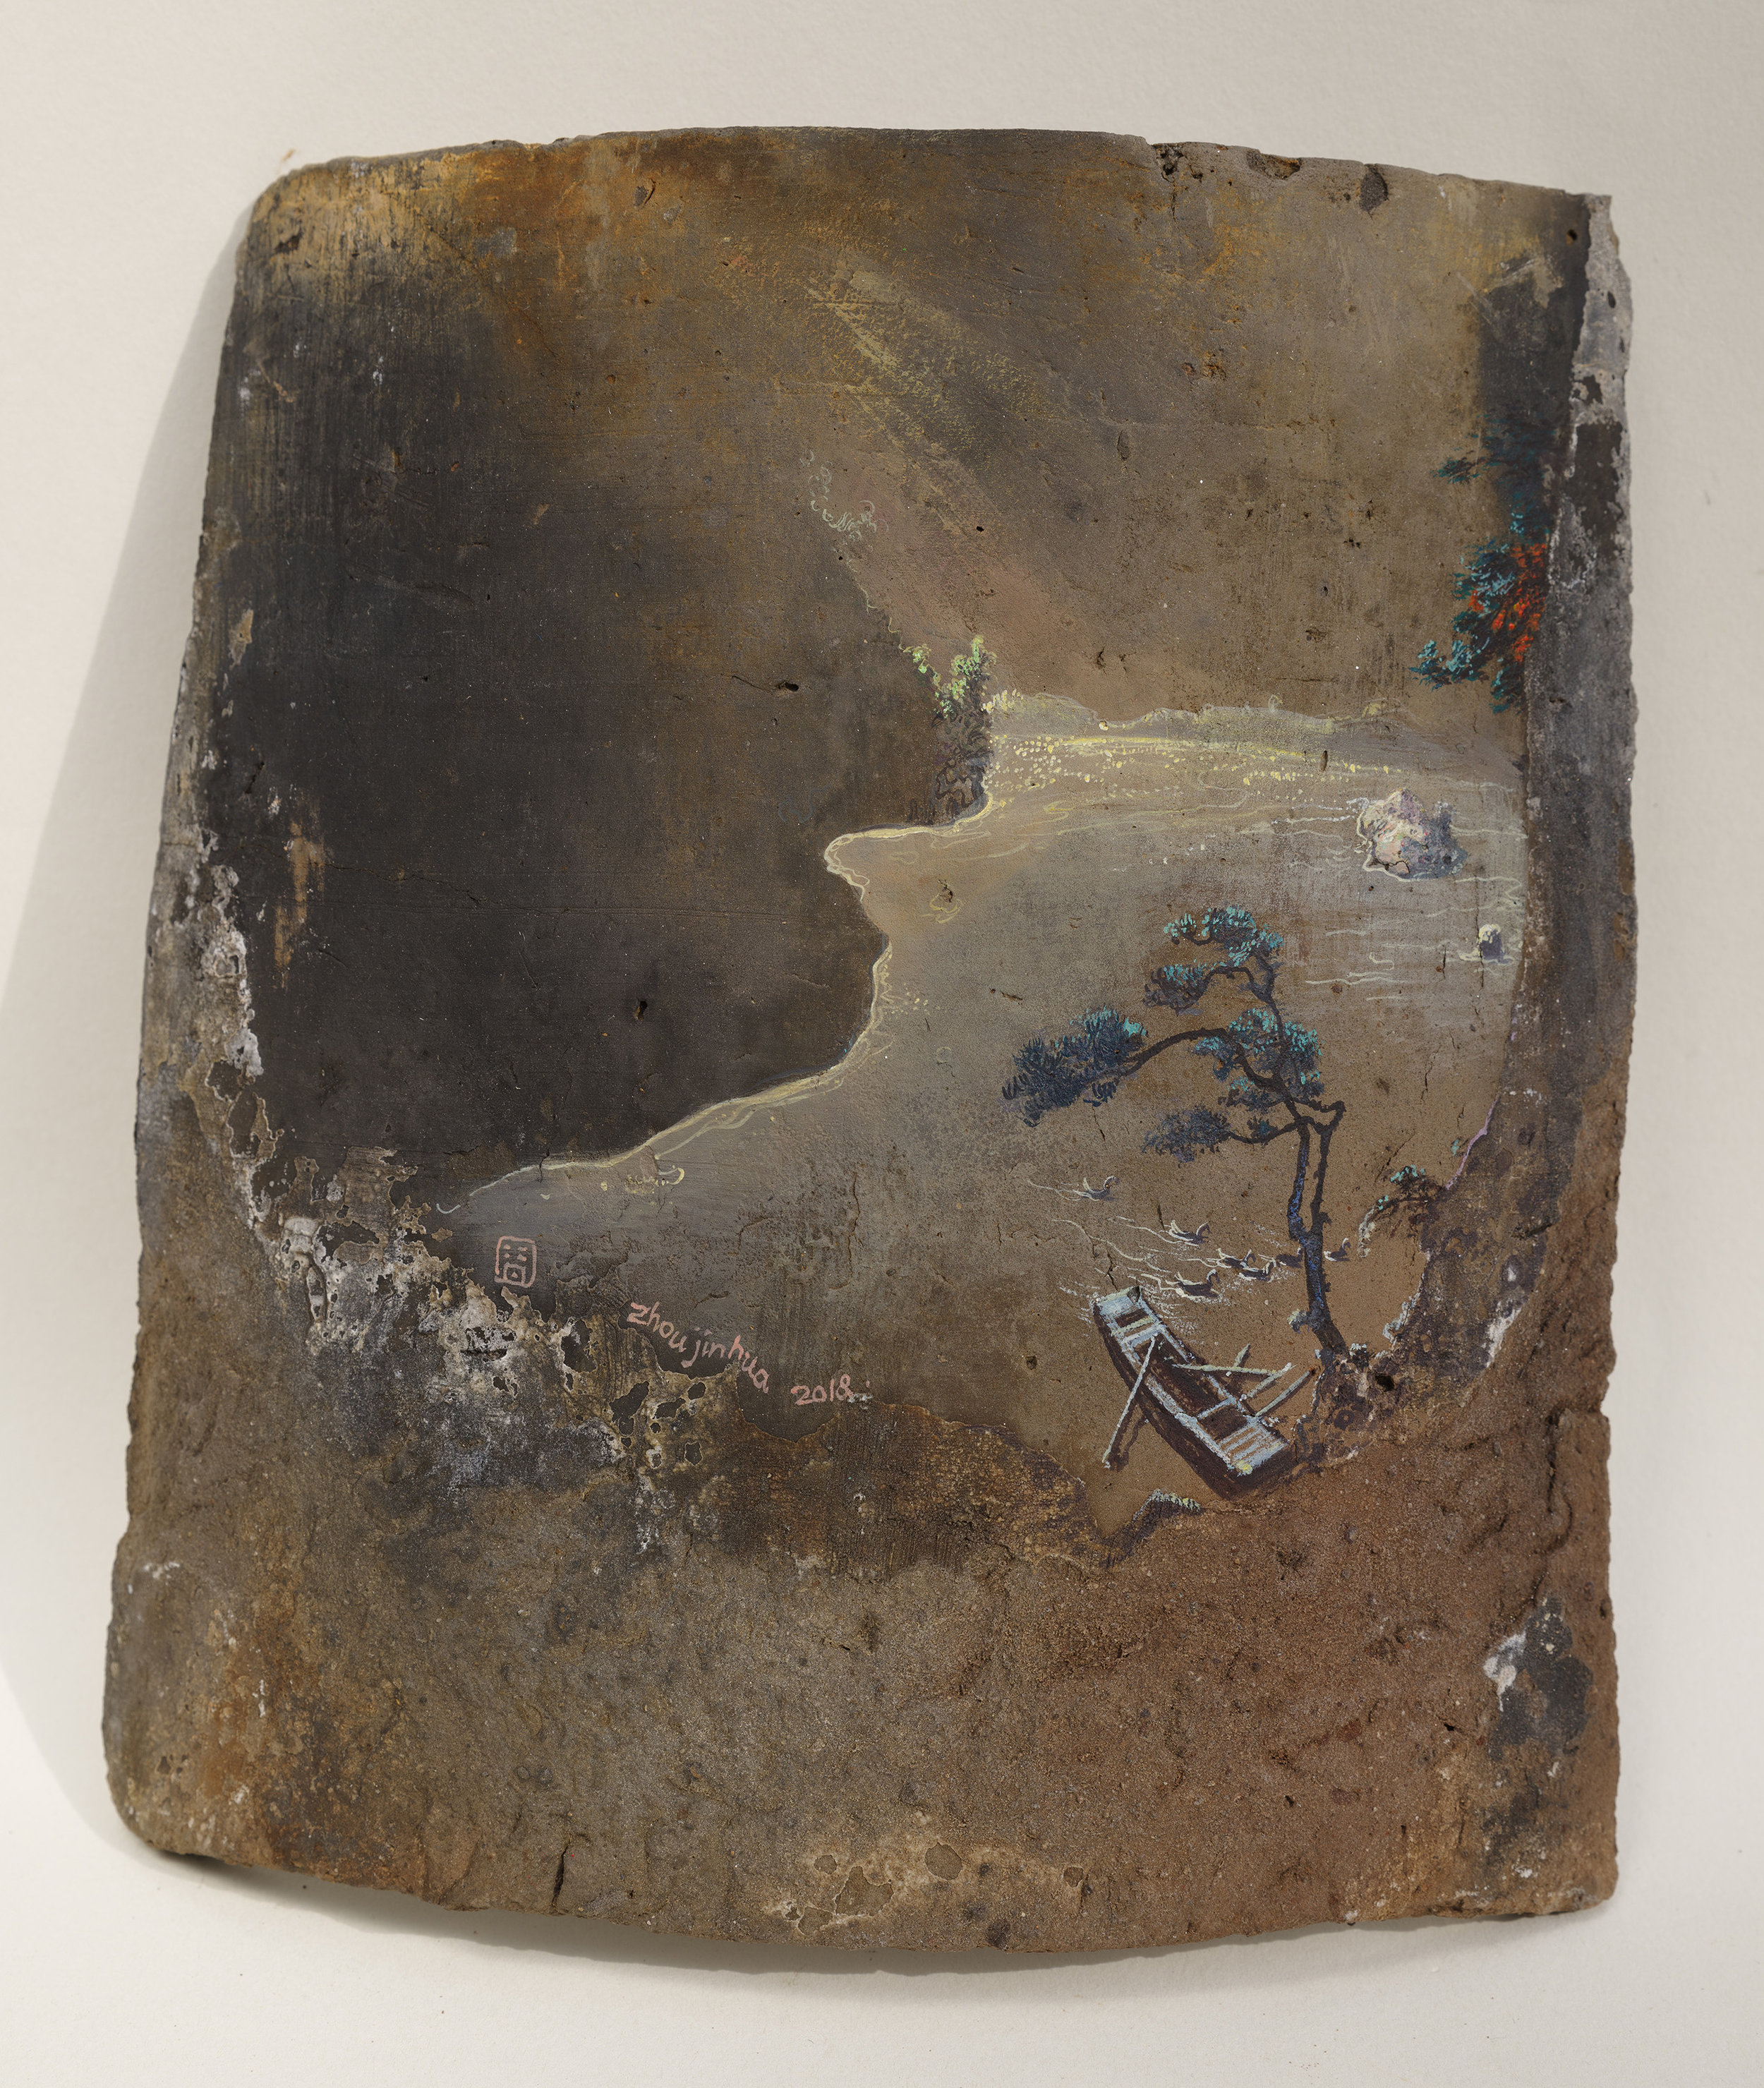 Remains of a Day No.14_2018_H21x19cm_acrylic on roof tile.jpg